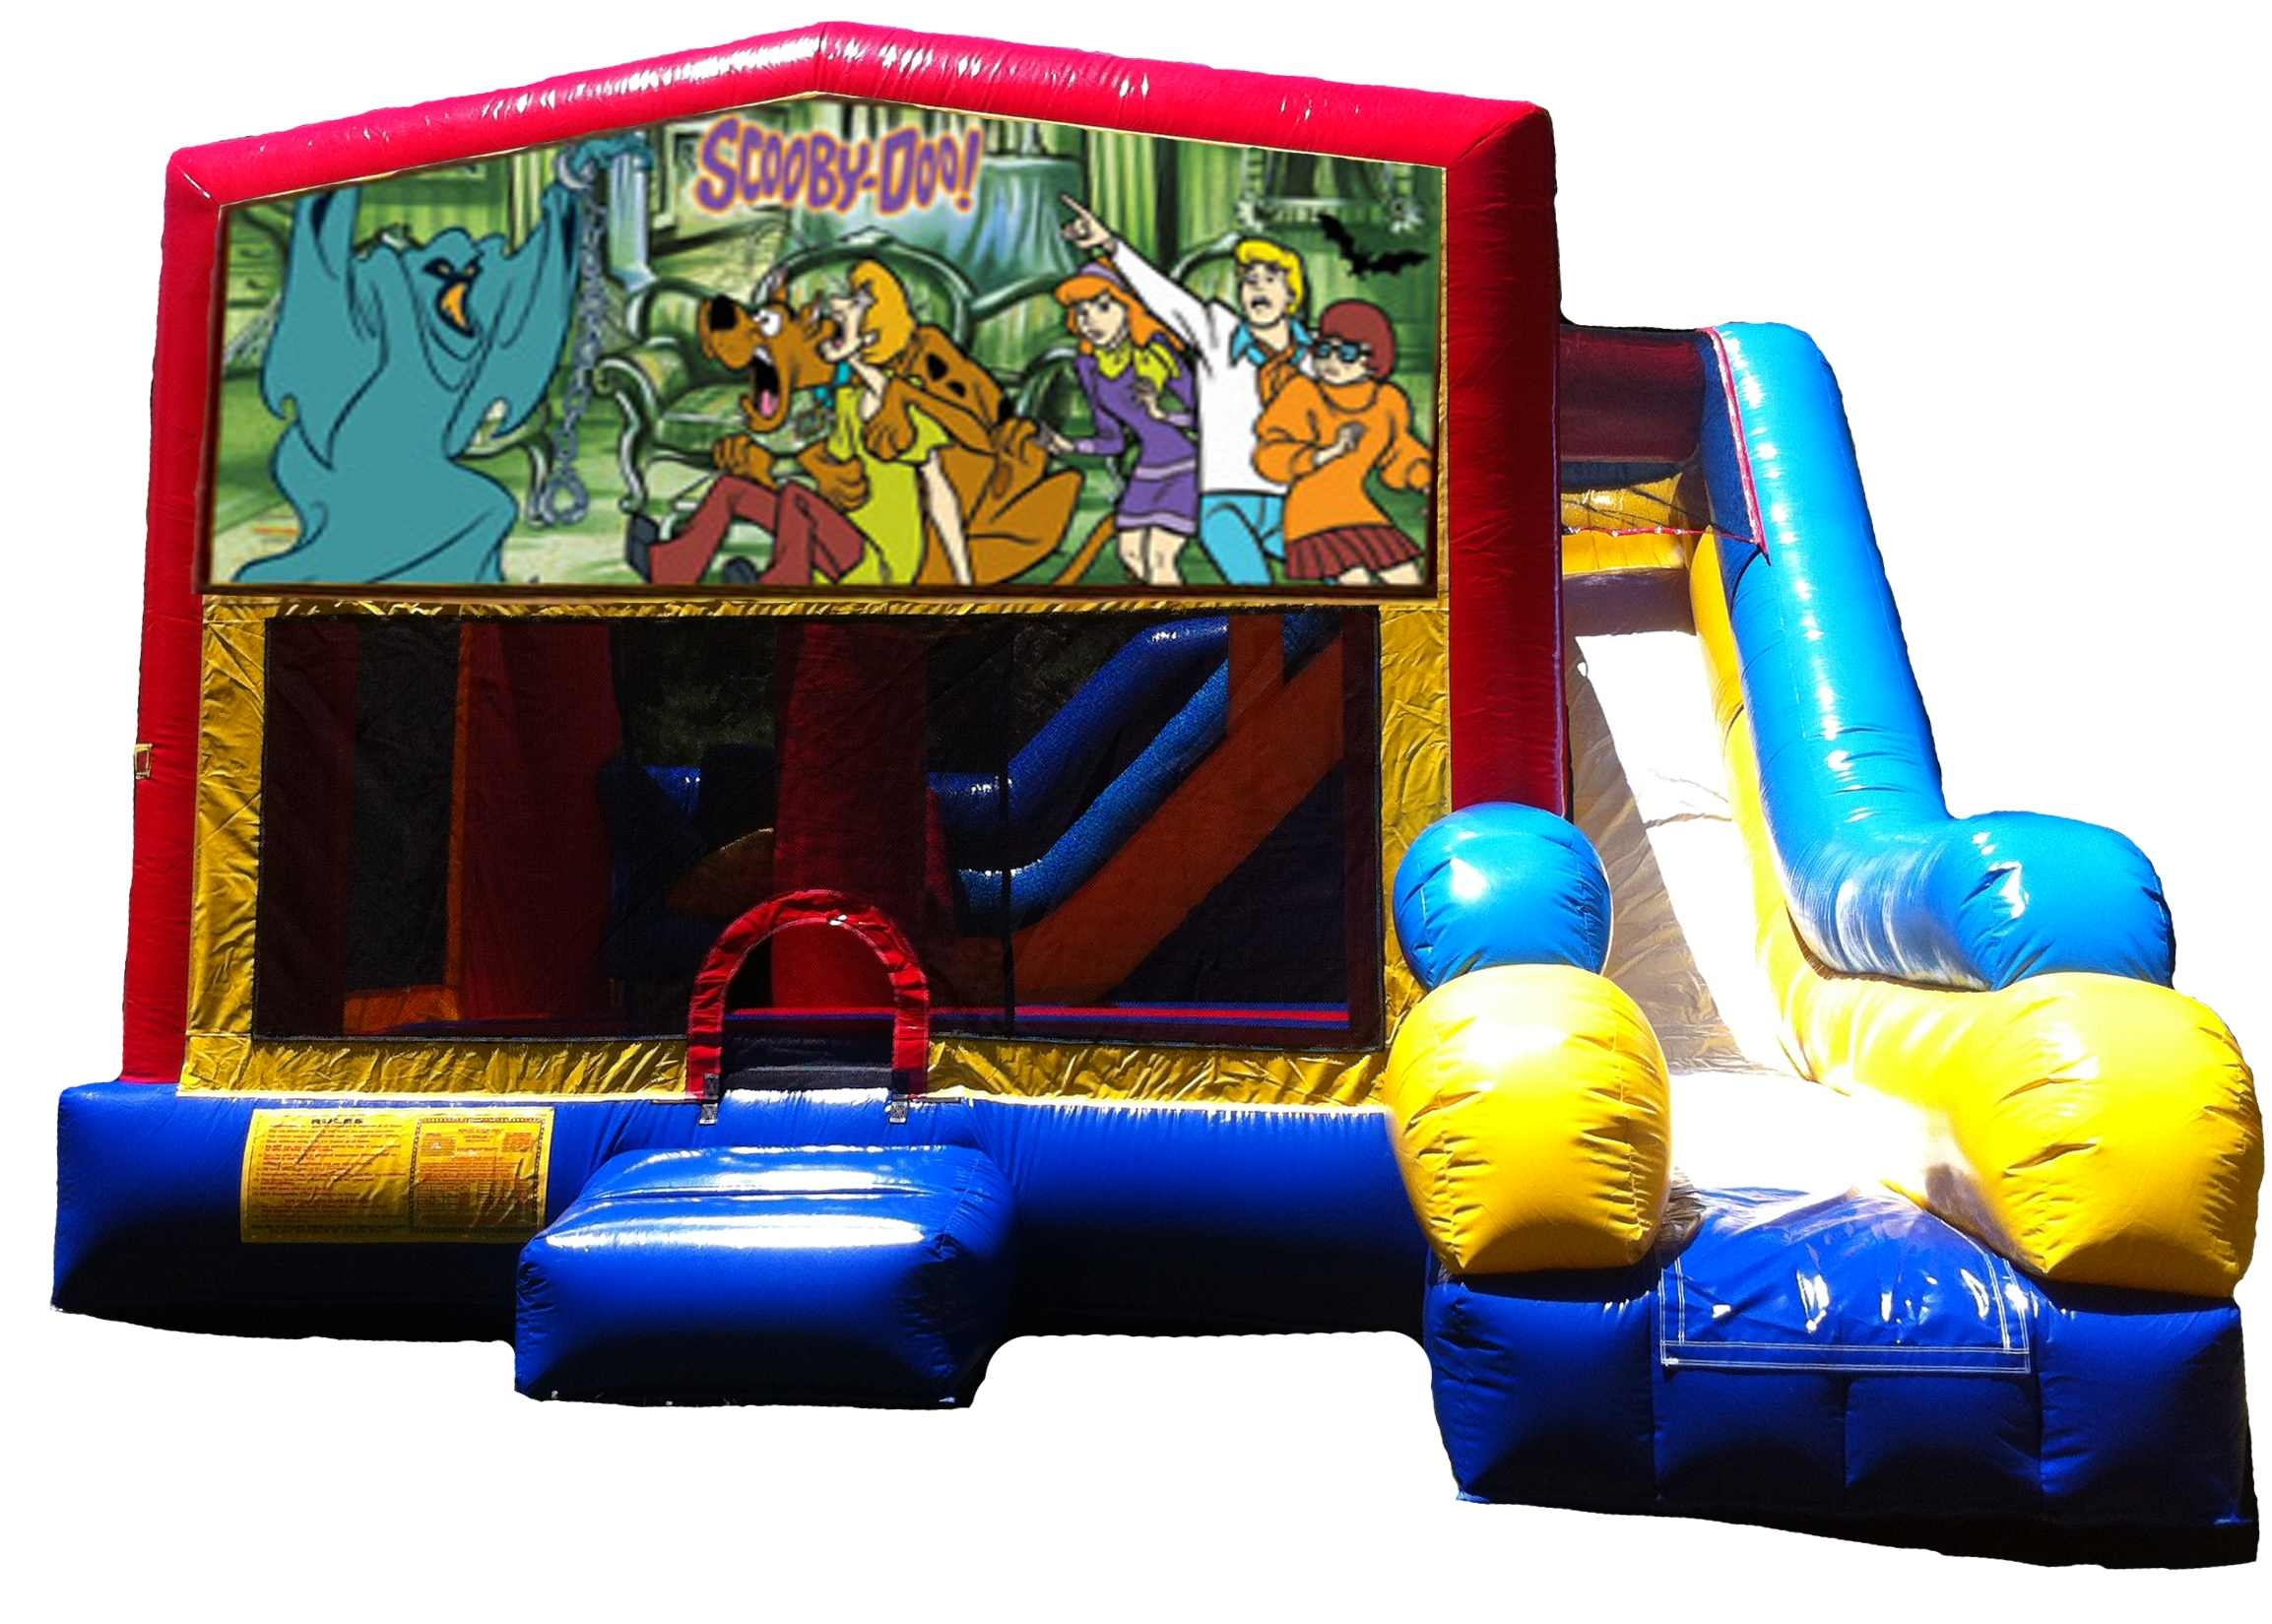 Scooby-Doo 5-in-1 C7 Combo Bouncer